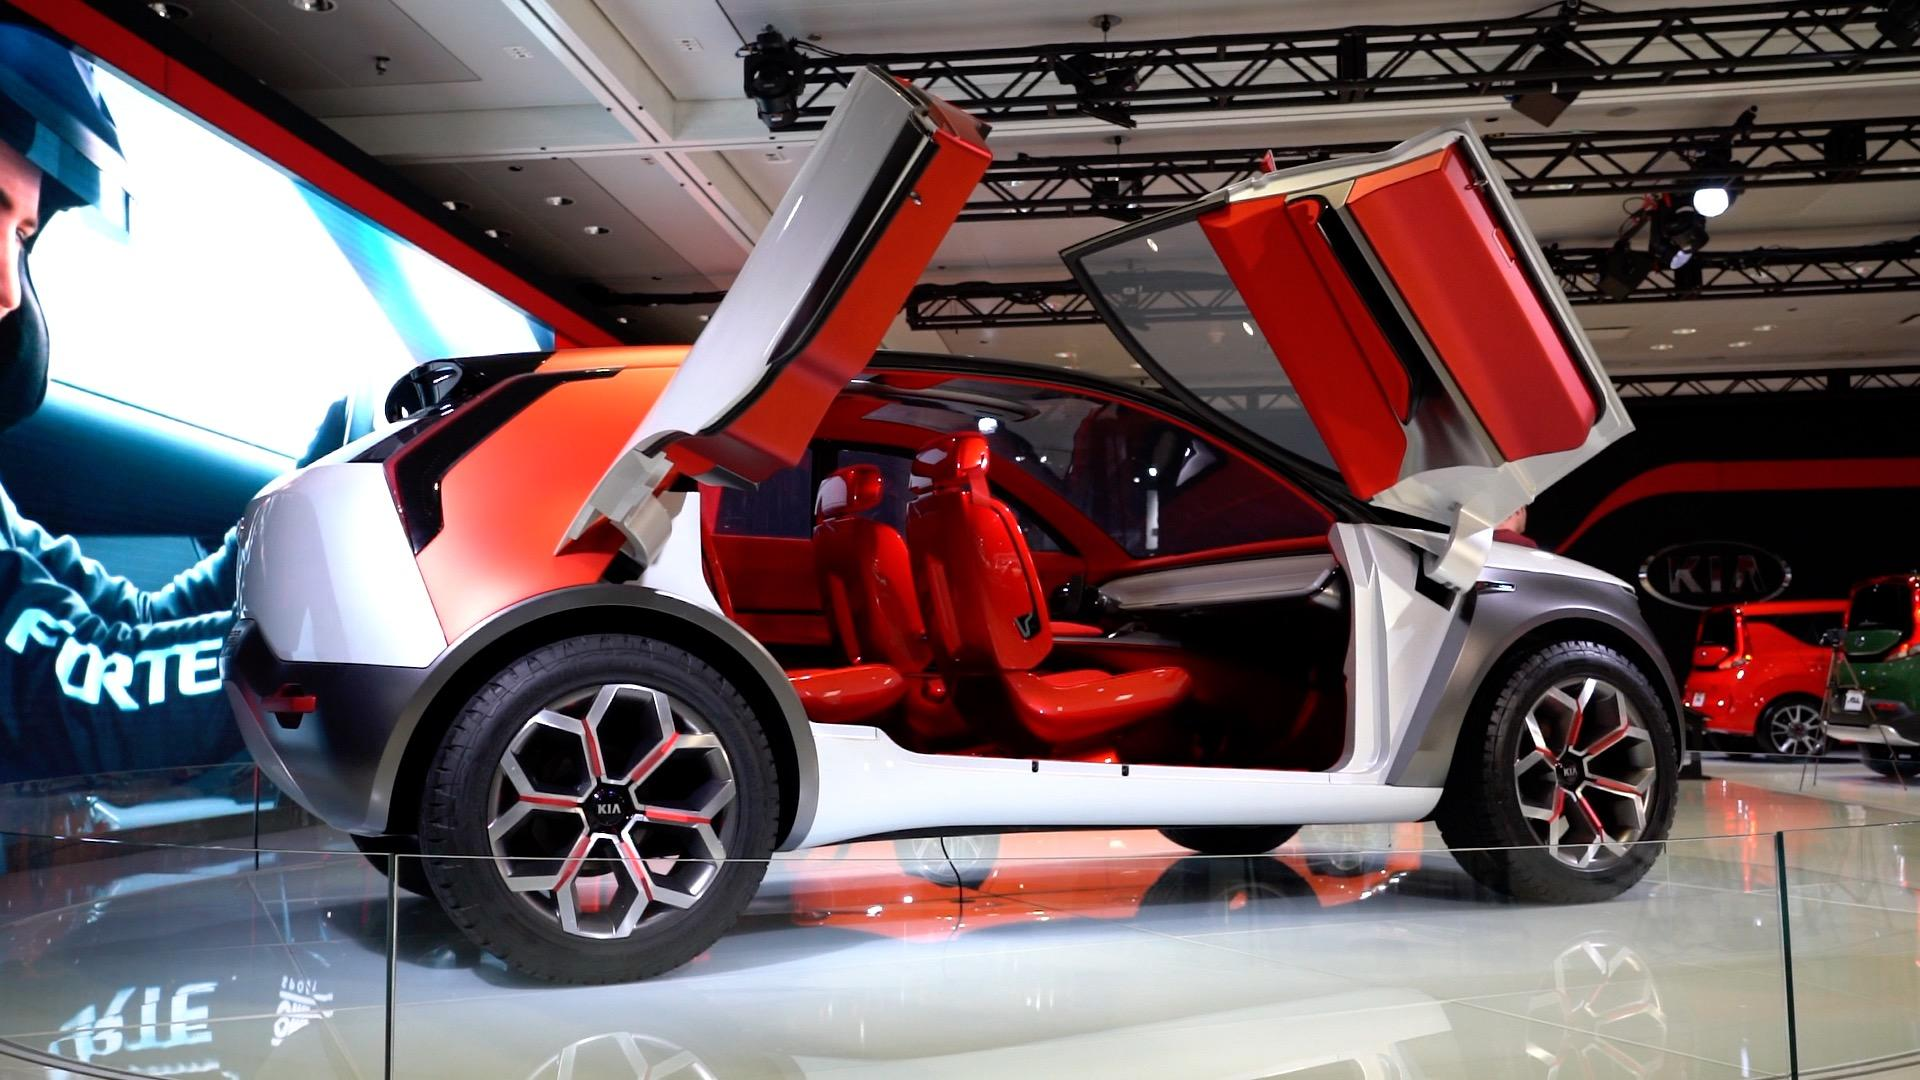 Video: Feel the heat from Kia's HabaNiro concept